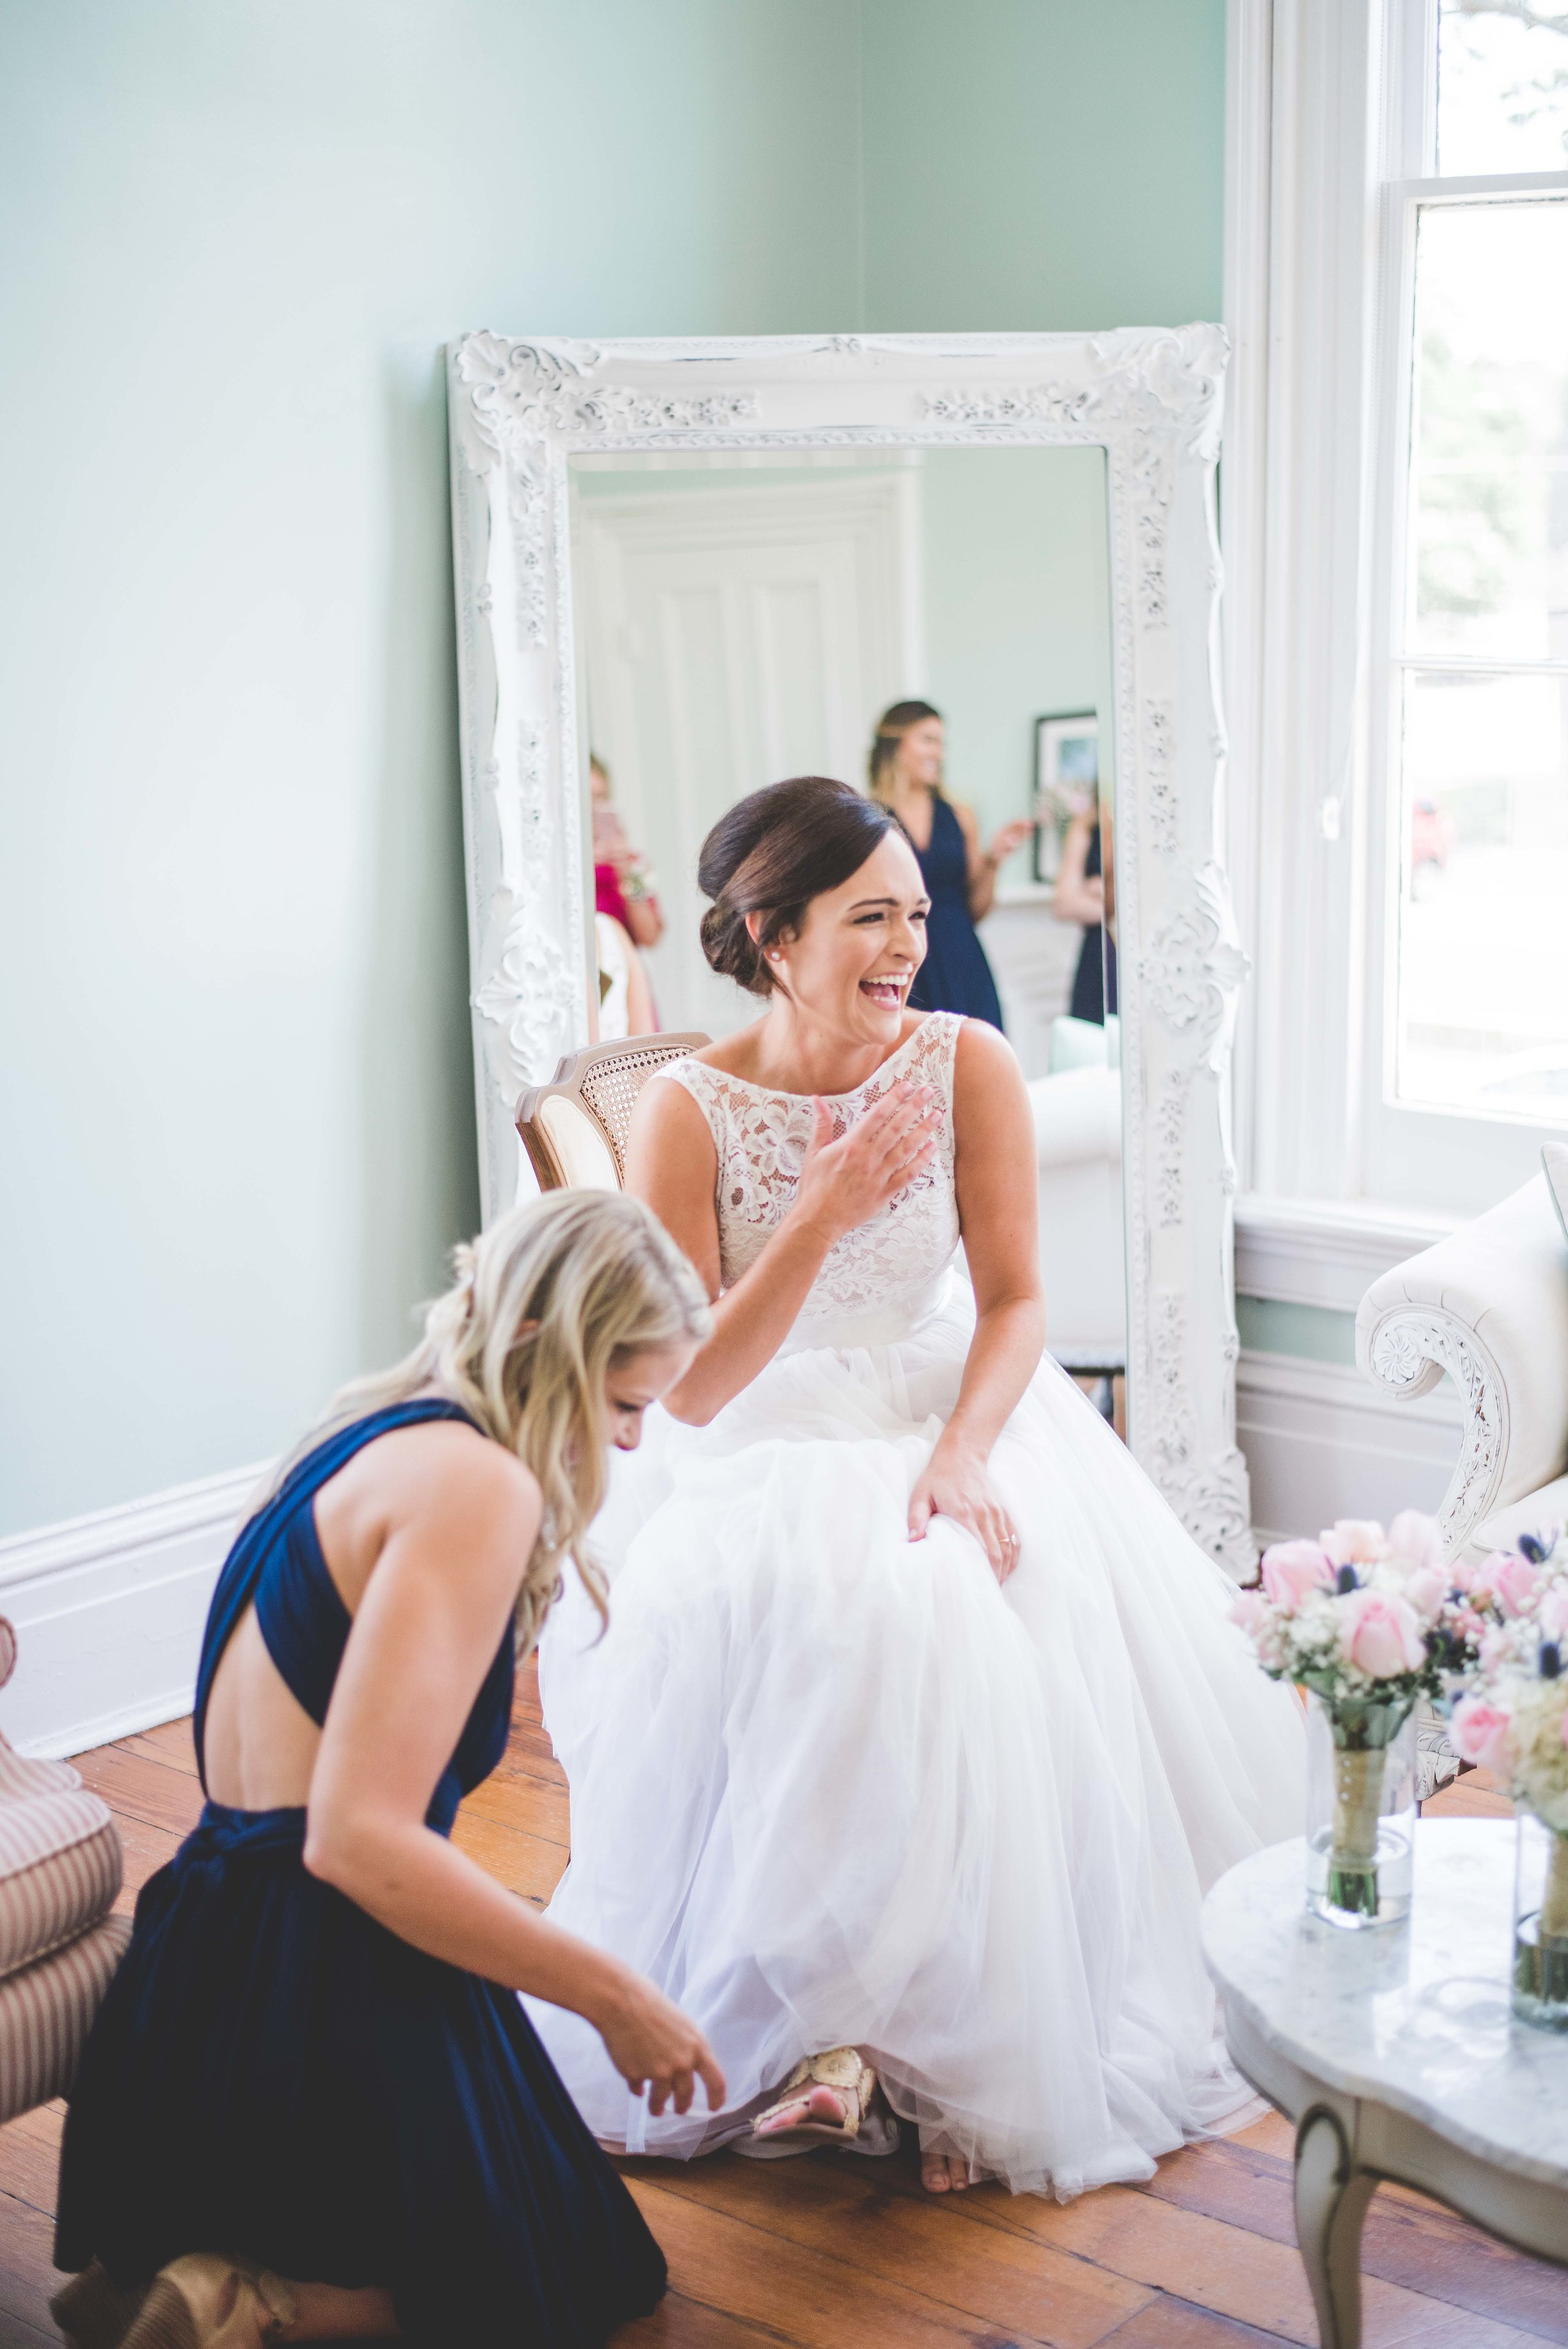 New day. bride getting ready exact